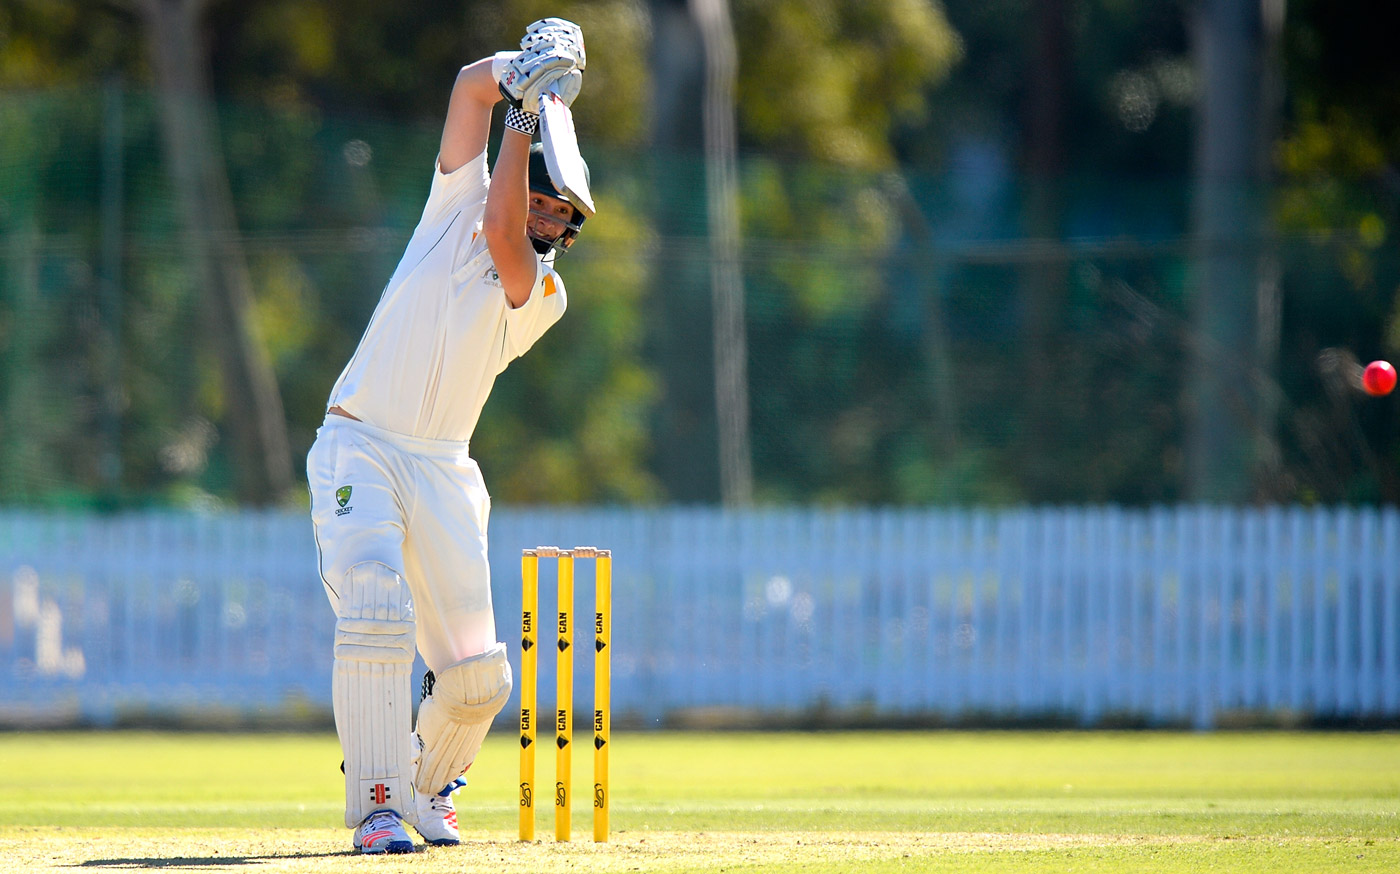 Cool Hand Matt: 20-year-old Renshaw has been practising batting right-handed since he was a kid, and is comfortable playing both the switch hit and the reverse sweep